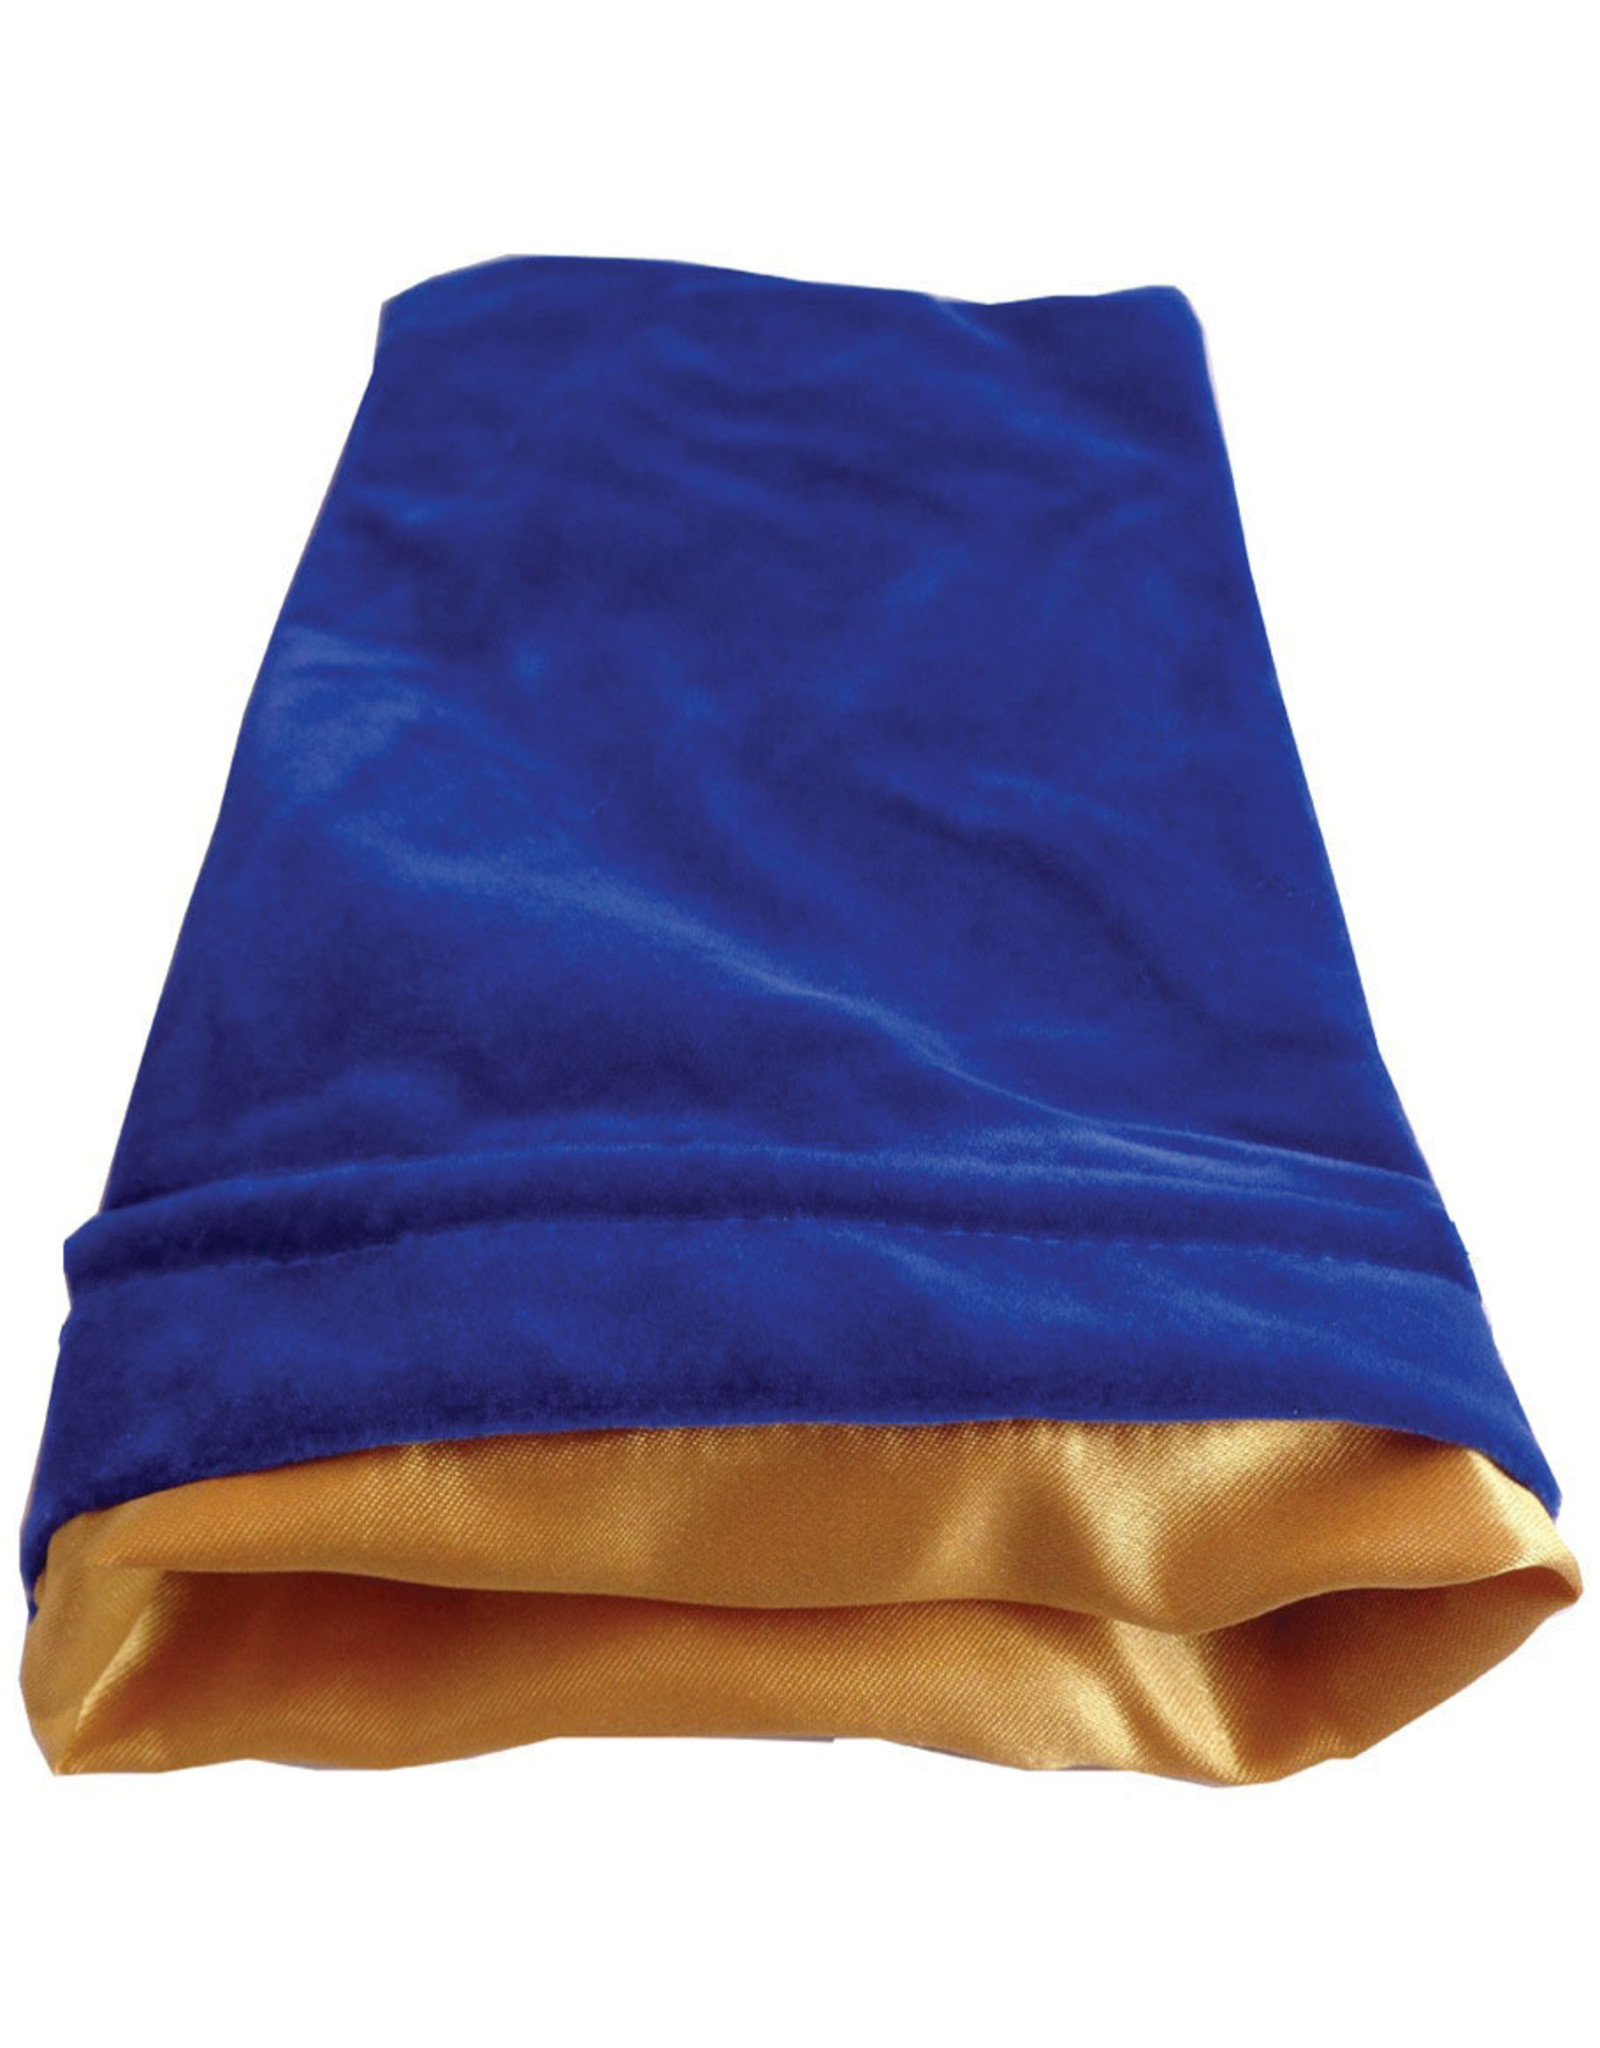 Metallic Dice Games 6in x 8in LARGE Blue Velvet Dice Bag with Gold Satin Lining